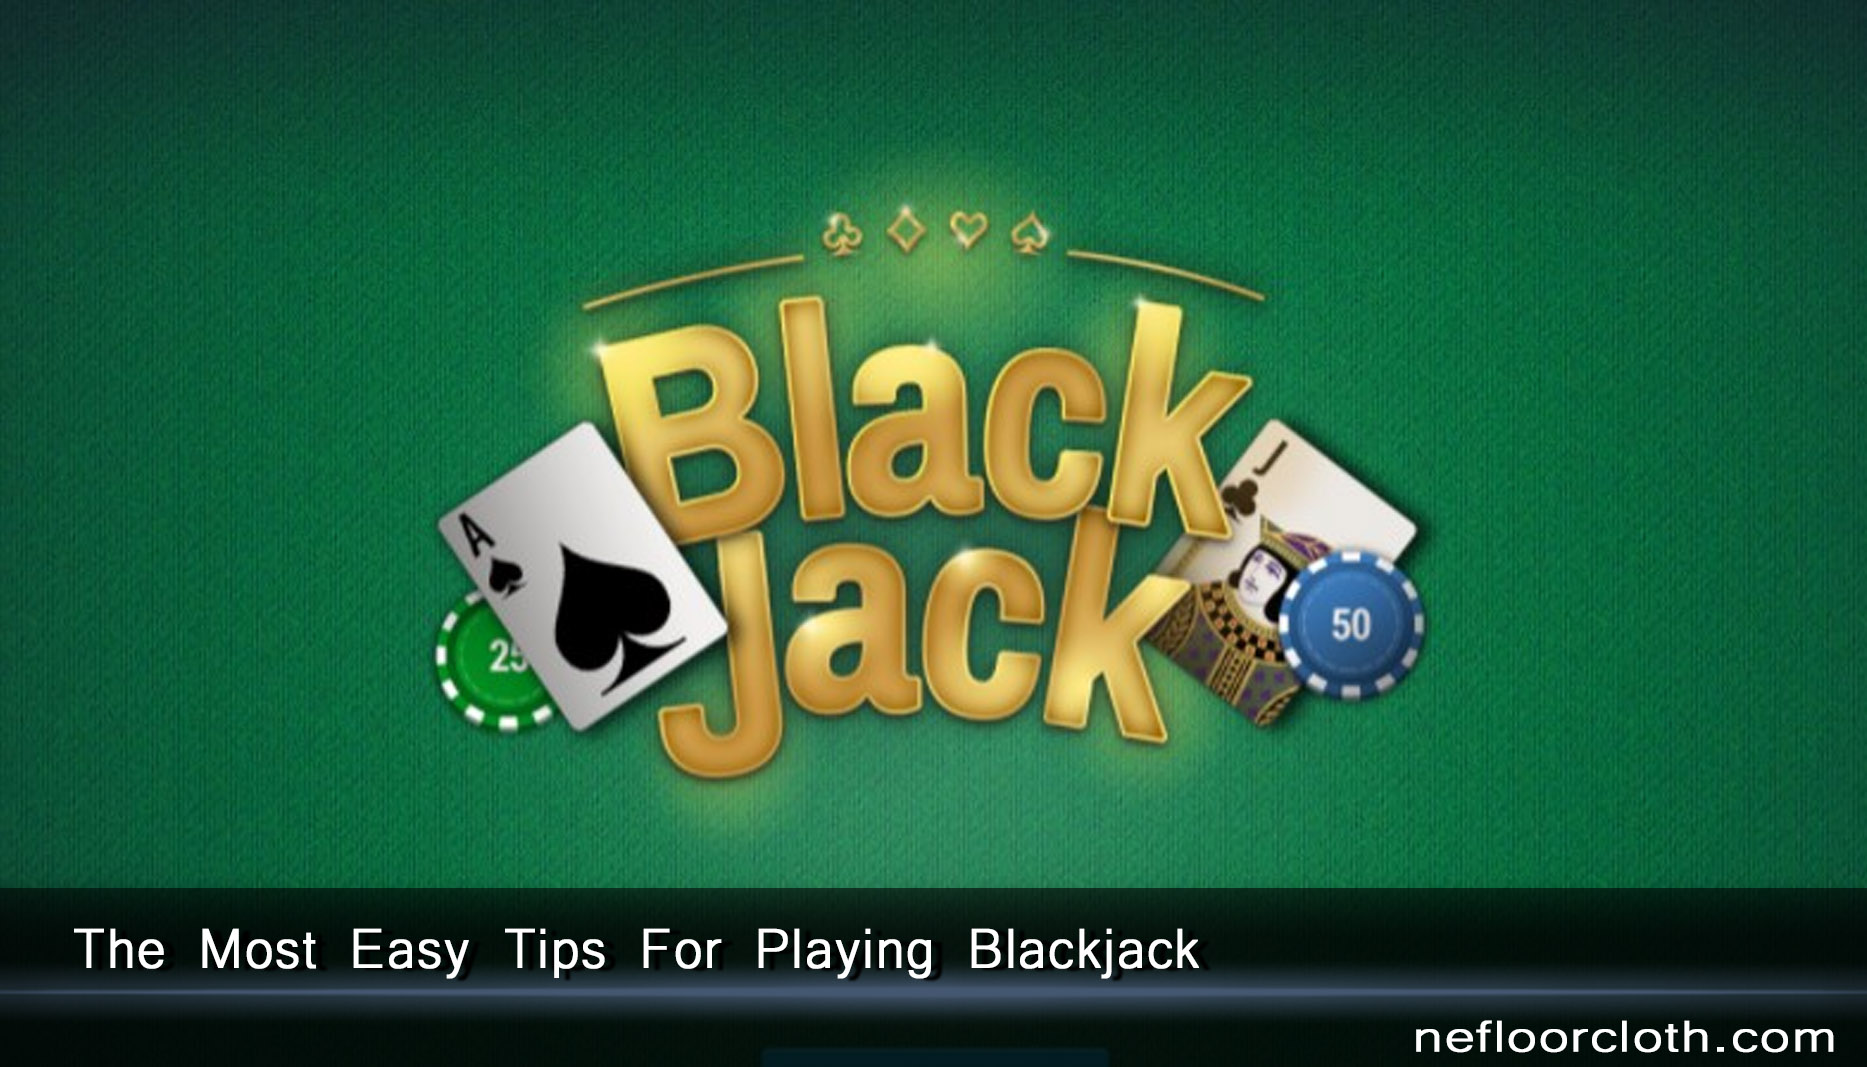 The Most Easy Tips For Playing Blackjack